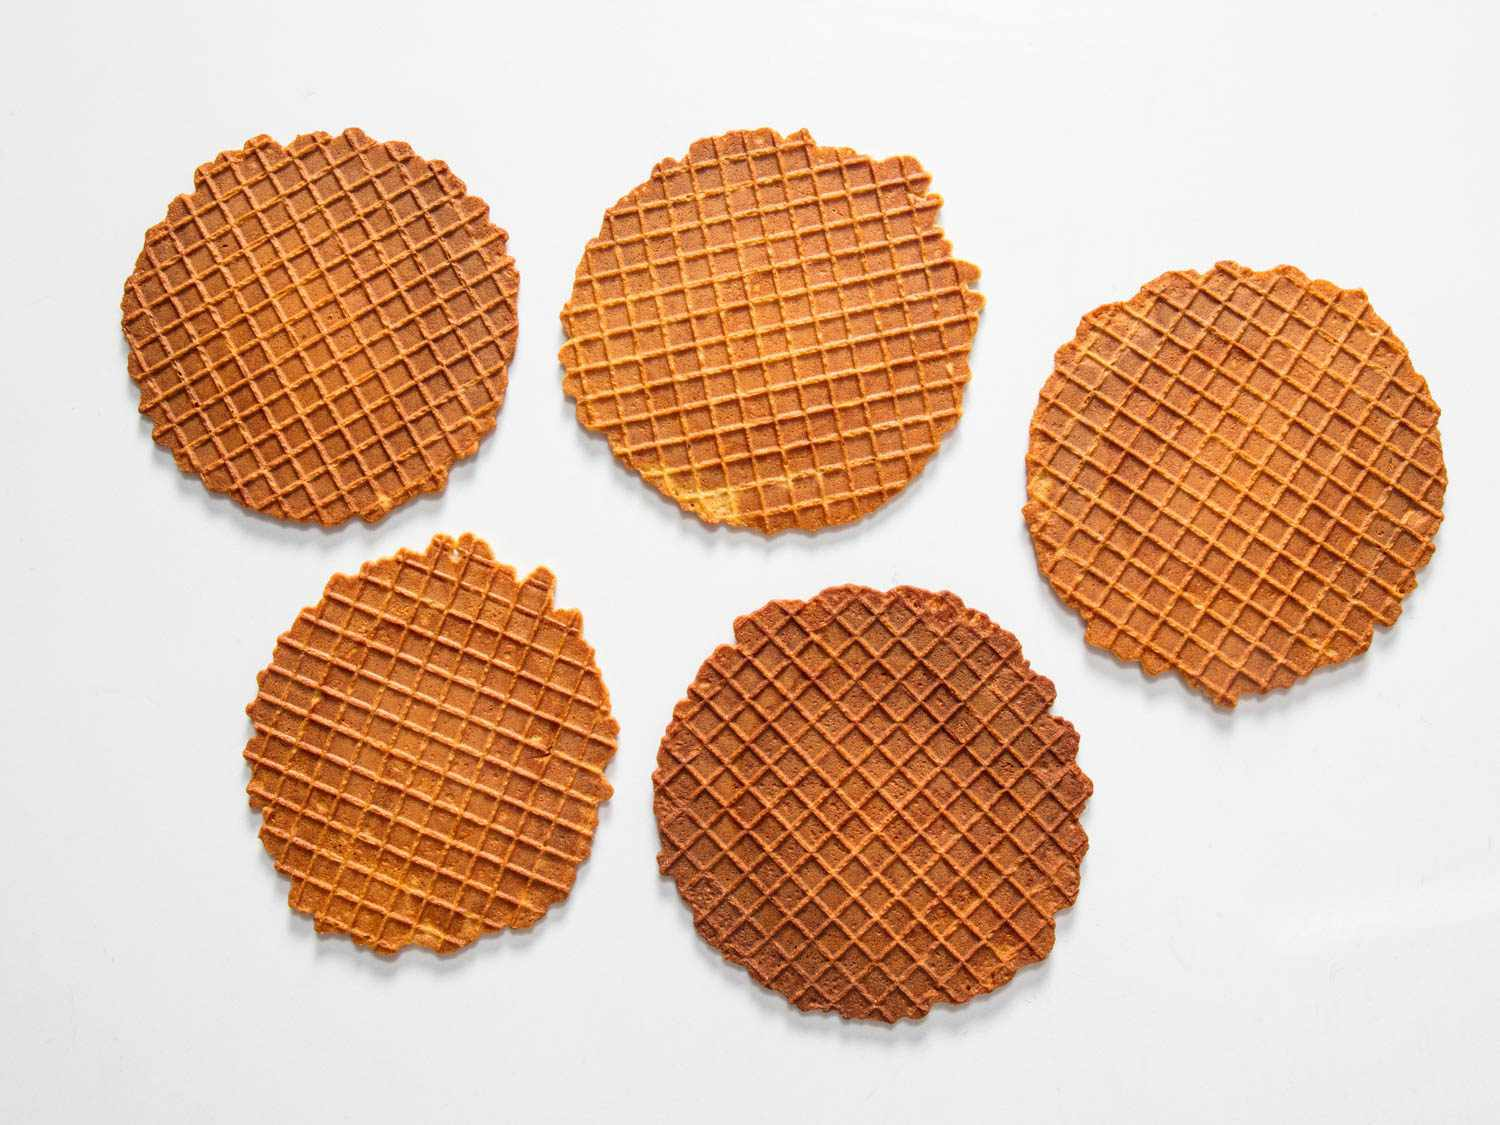 discoloration in unevenly mixed waffle batter